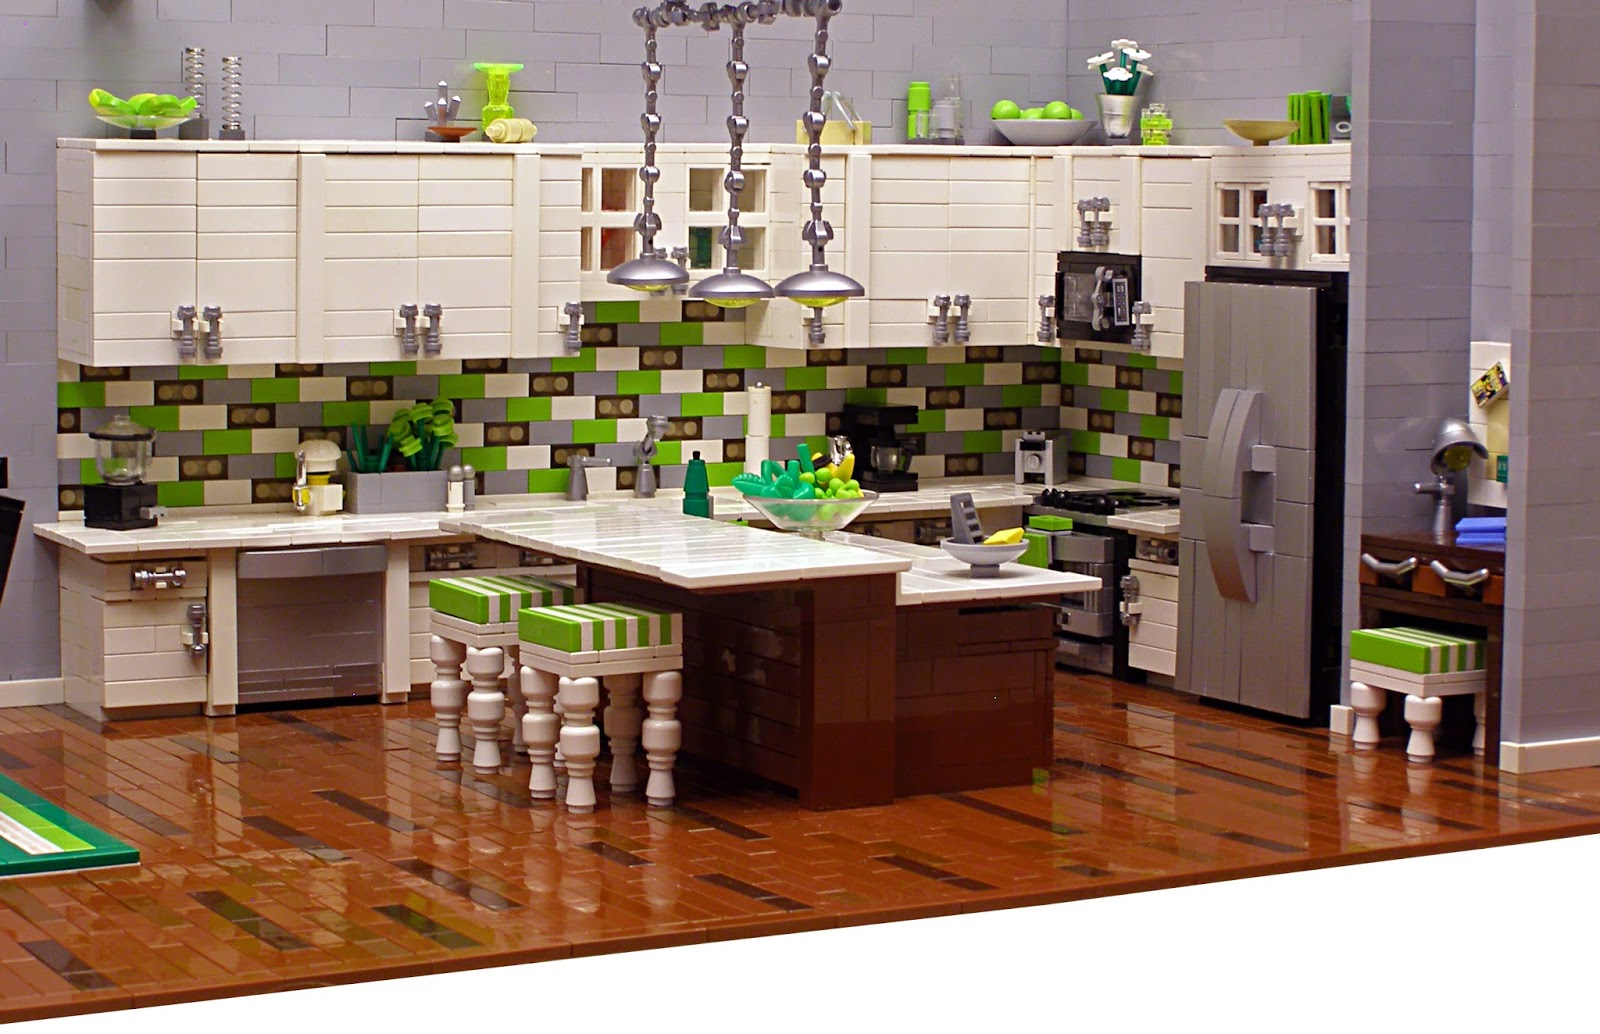 The brickverse amazing lego interiors for Kitchens u build